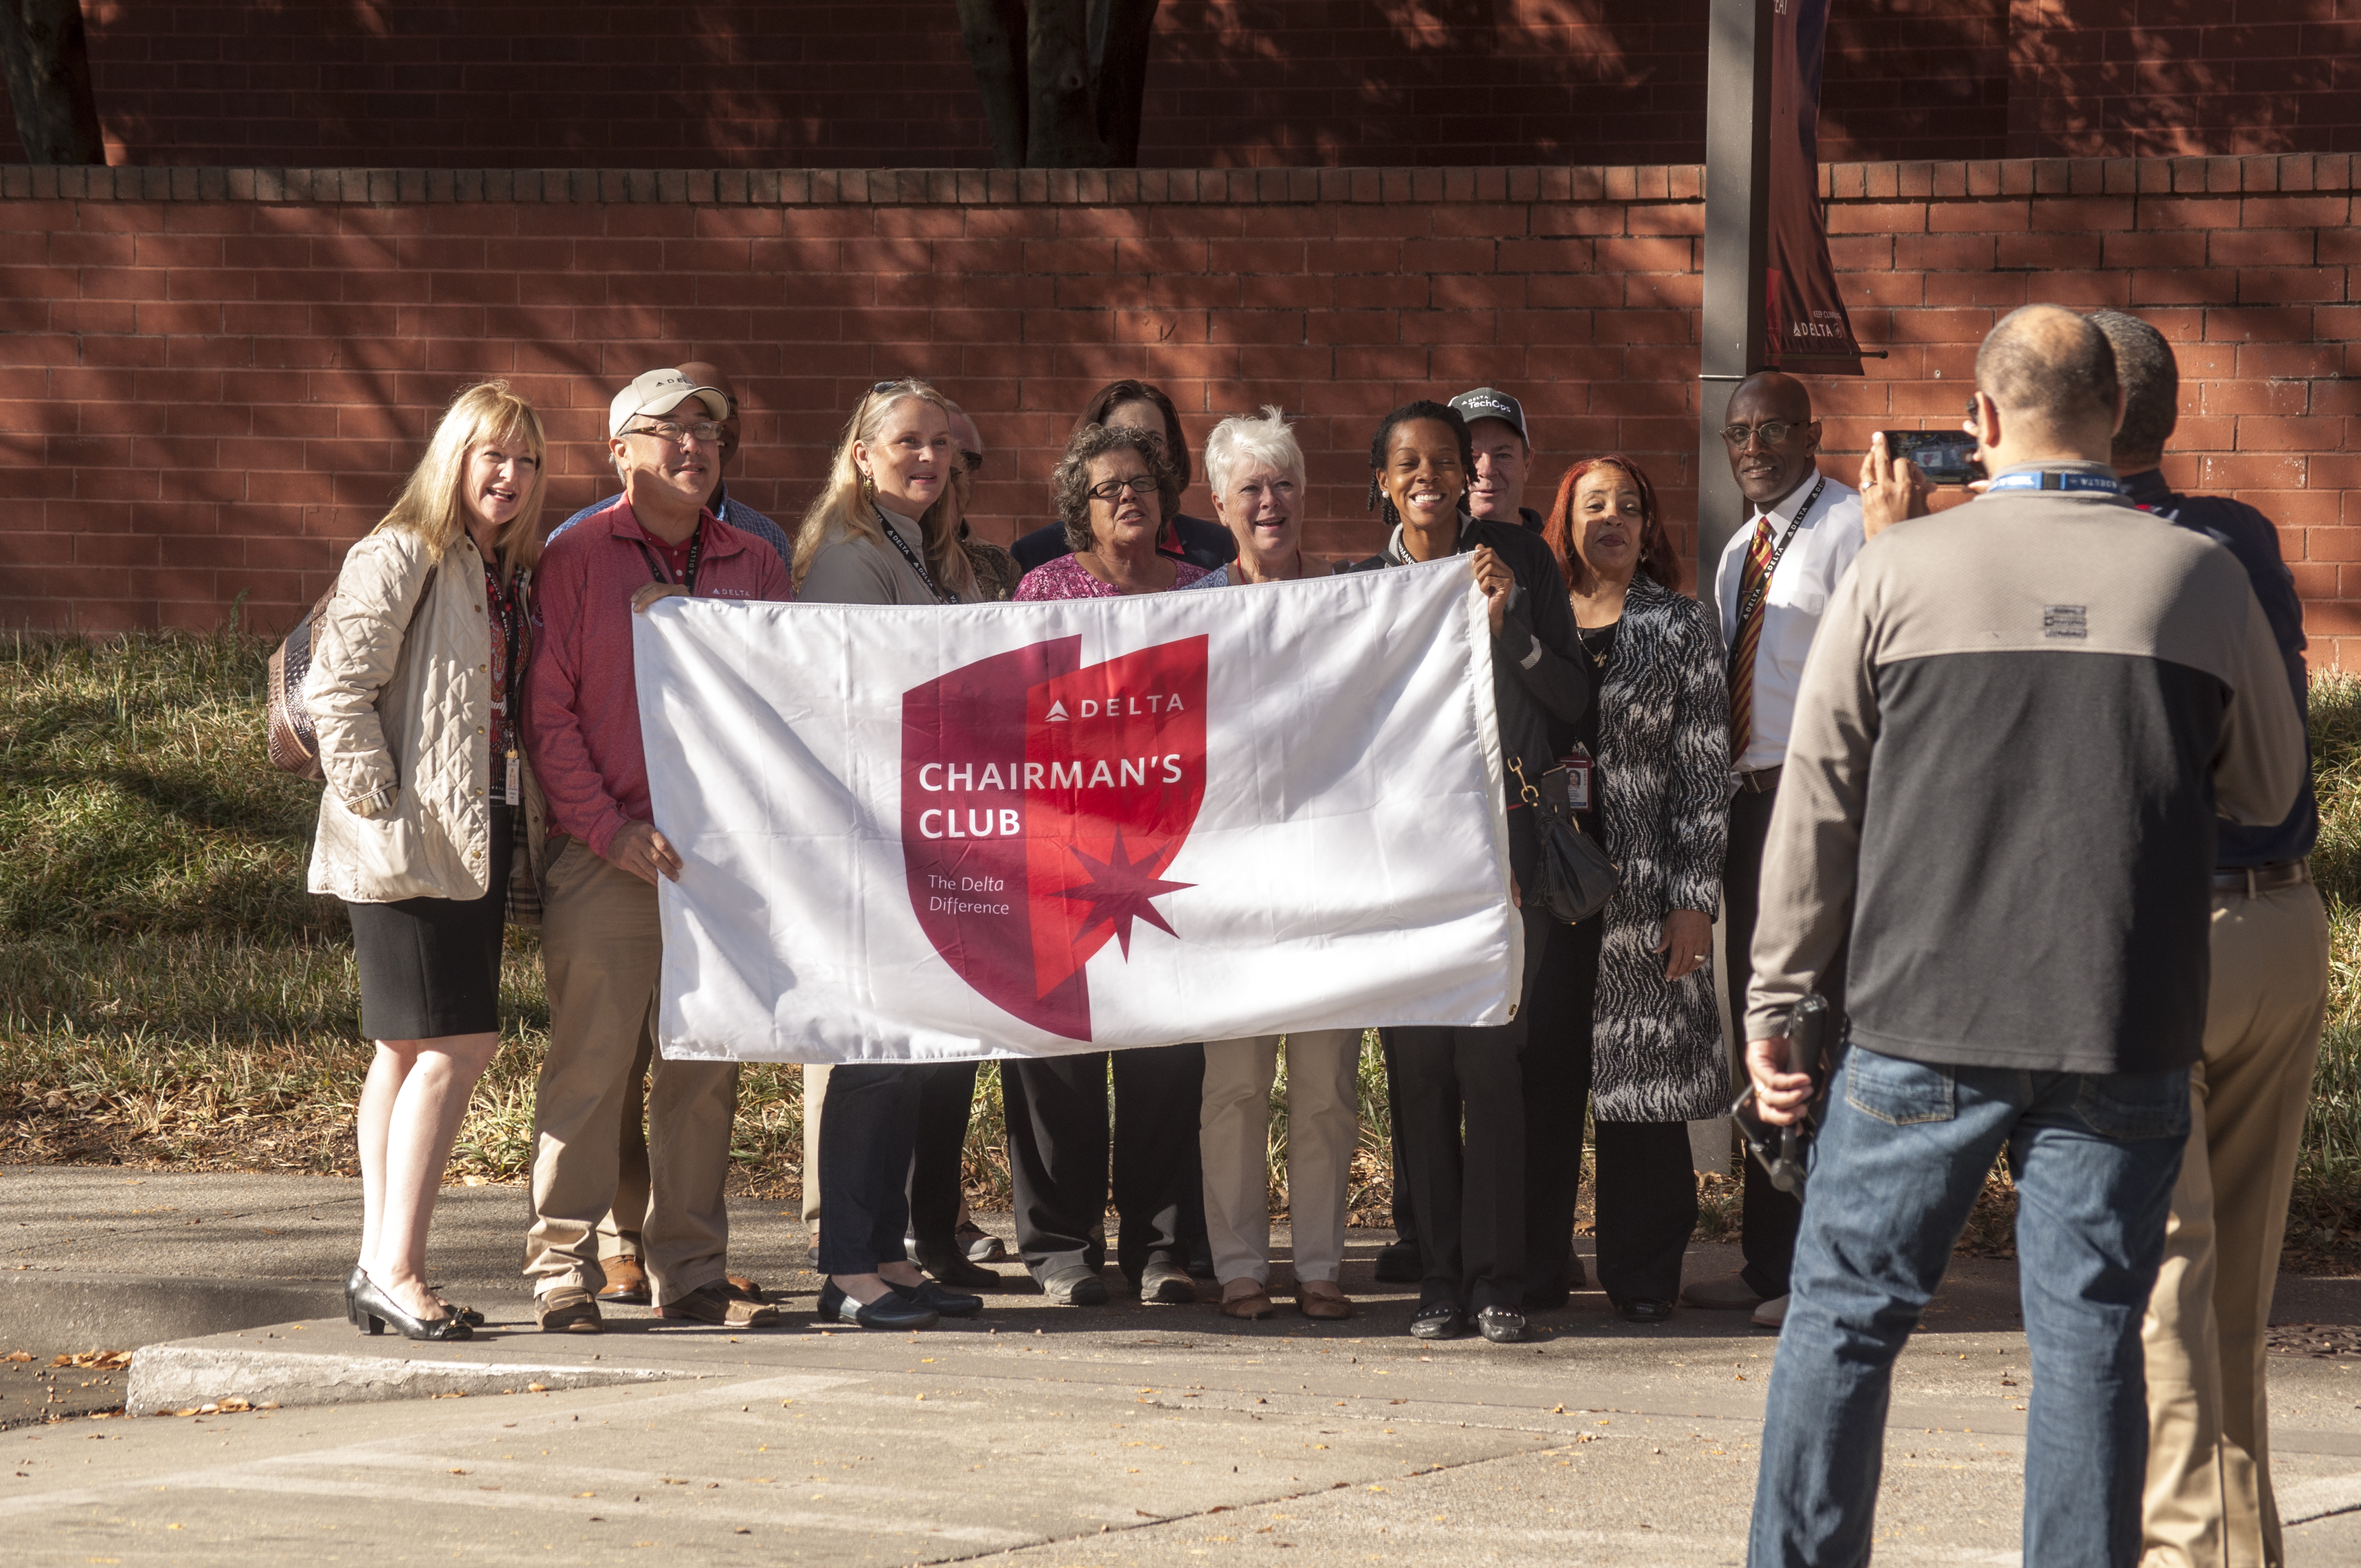 Honorees hold Chairman's Club flag